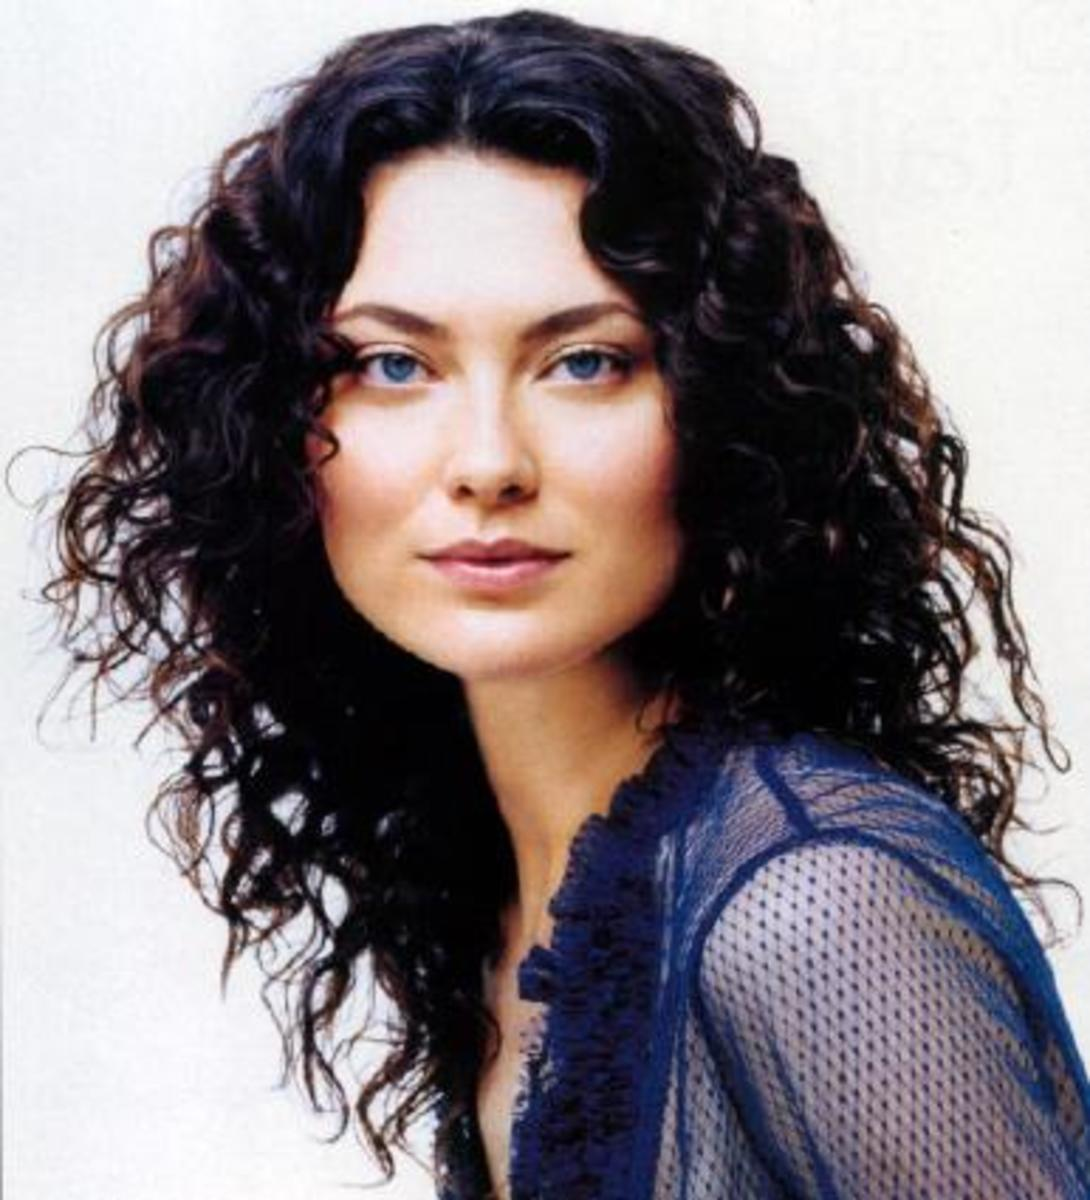 Cute Hairstyles For Curly Hair, Long Hairstyle 2011, Hairstyle 2011, New Long Hairstyle 2011, Celebrity Long Hairstyles 2047